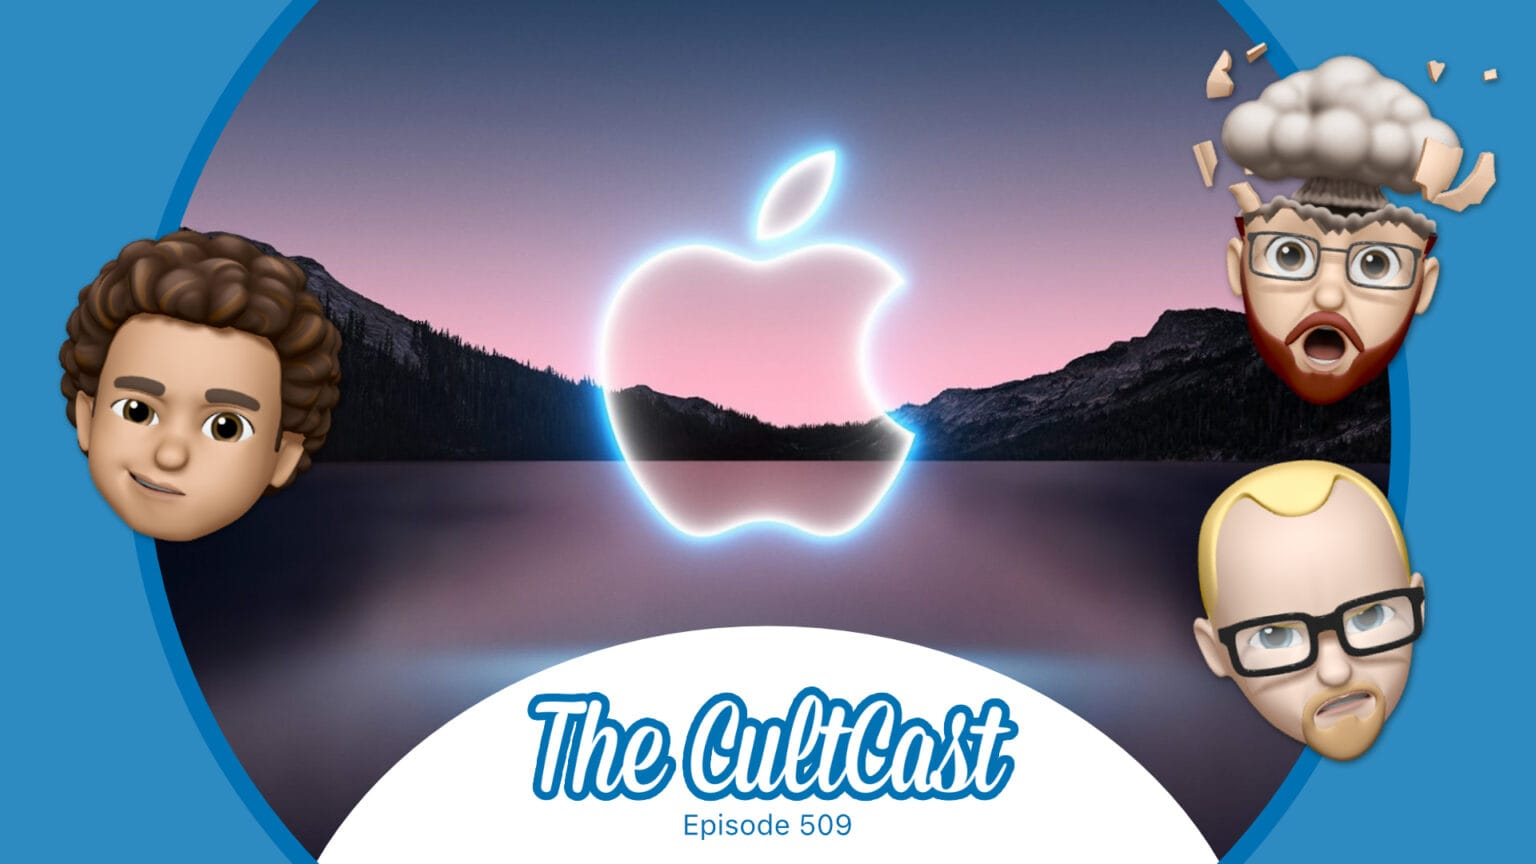 CultCast podcast episode 509: We are psyched for the California Streaming event.